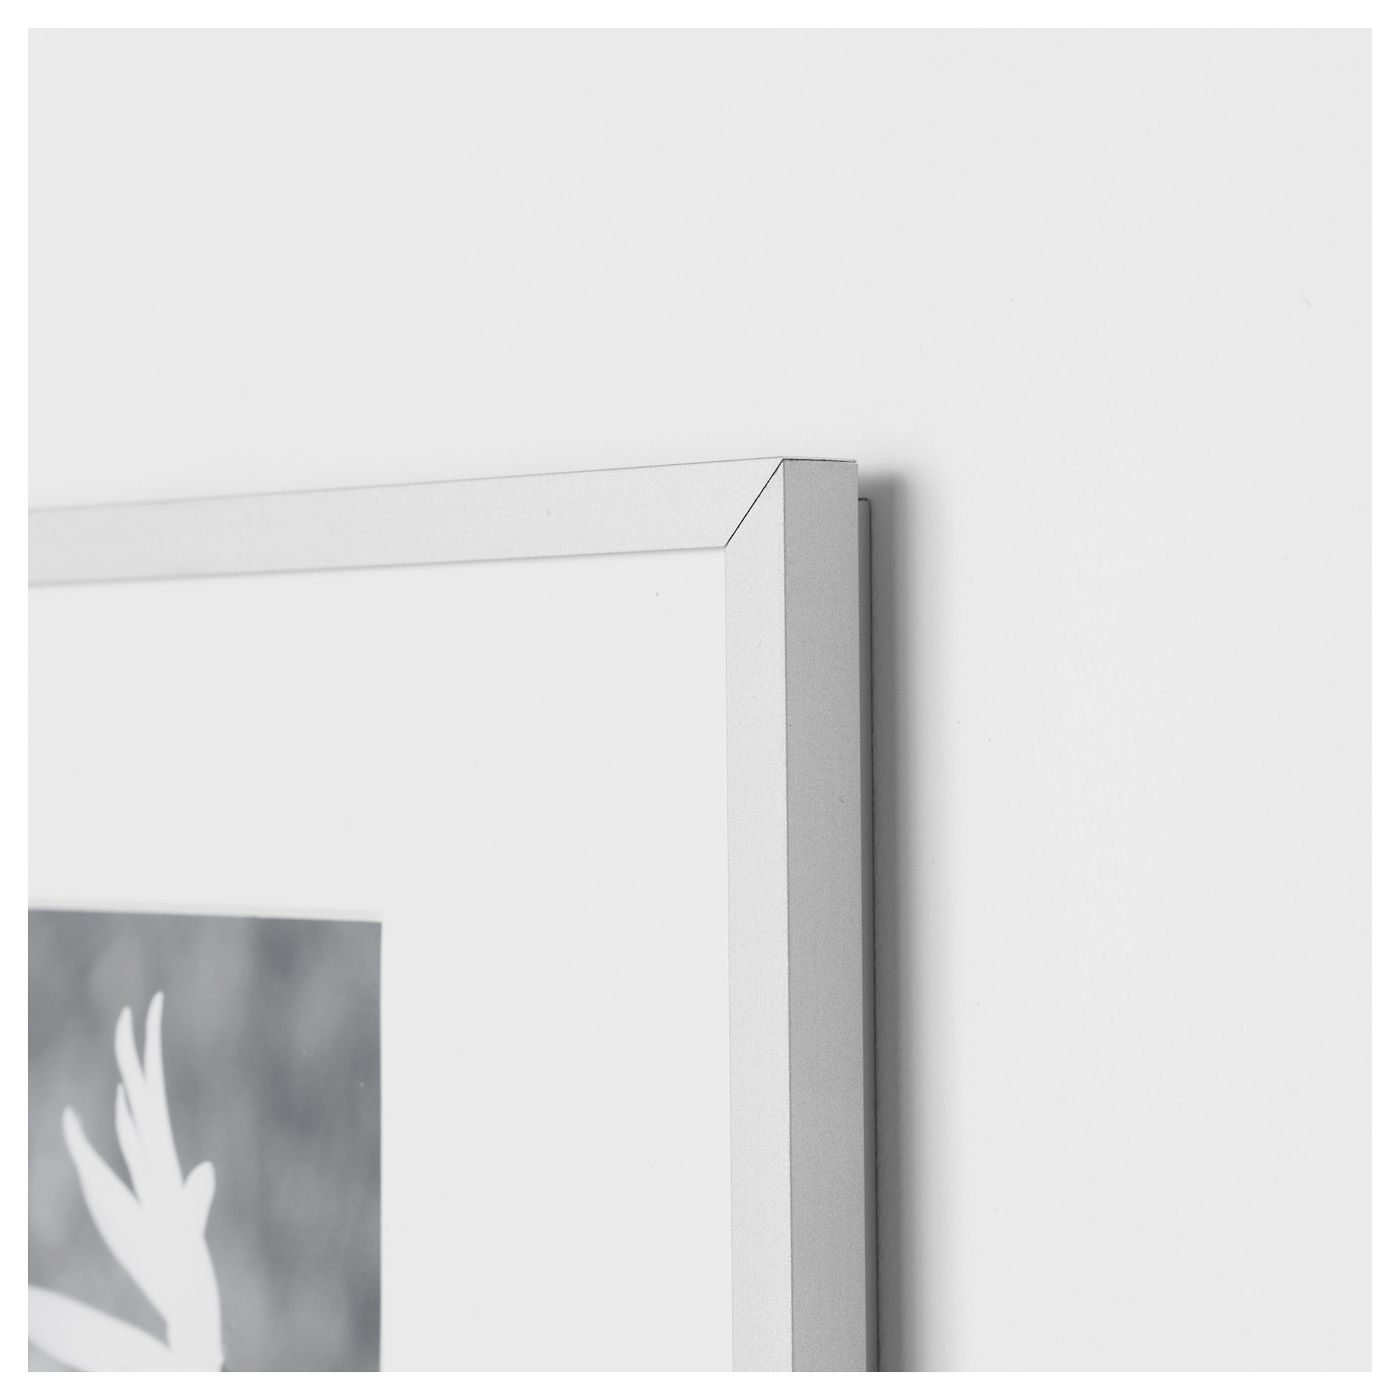 Lomviken Frame Aluminum 16 X20 41x51 Cm Ikea Photo Frames Frame Frames On Wall